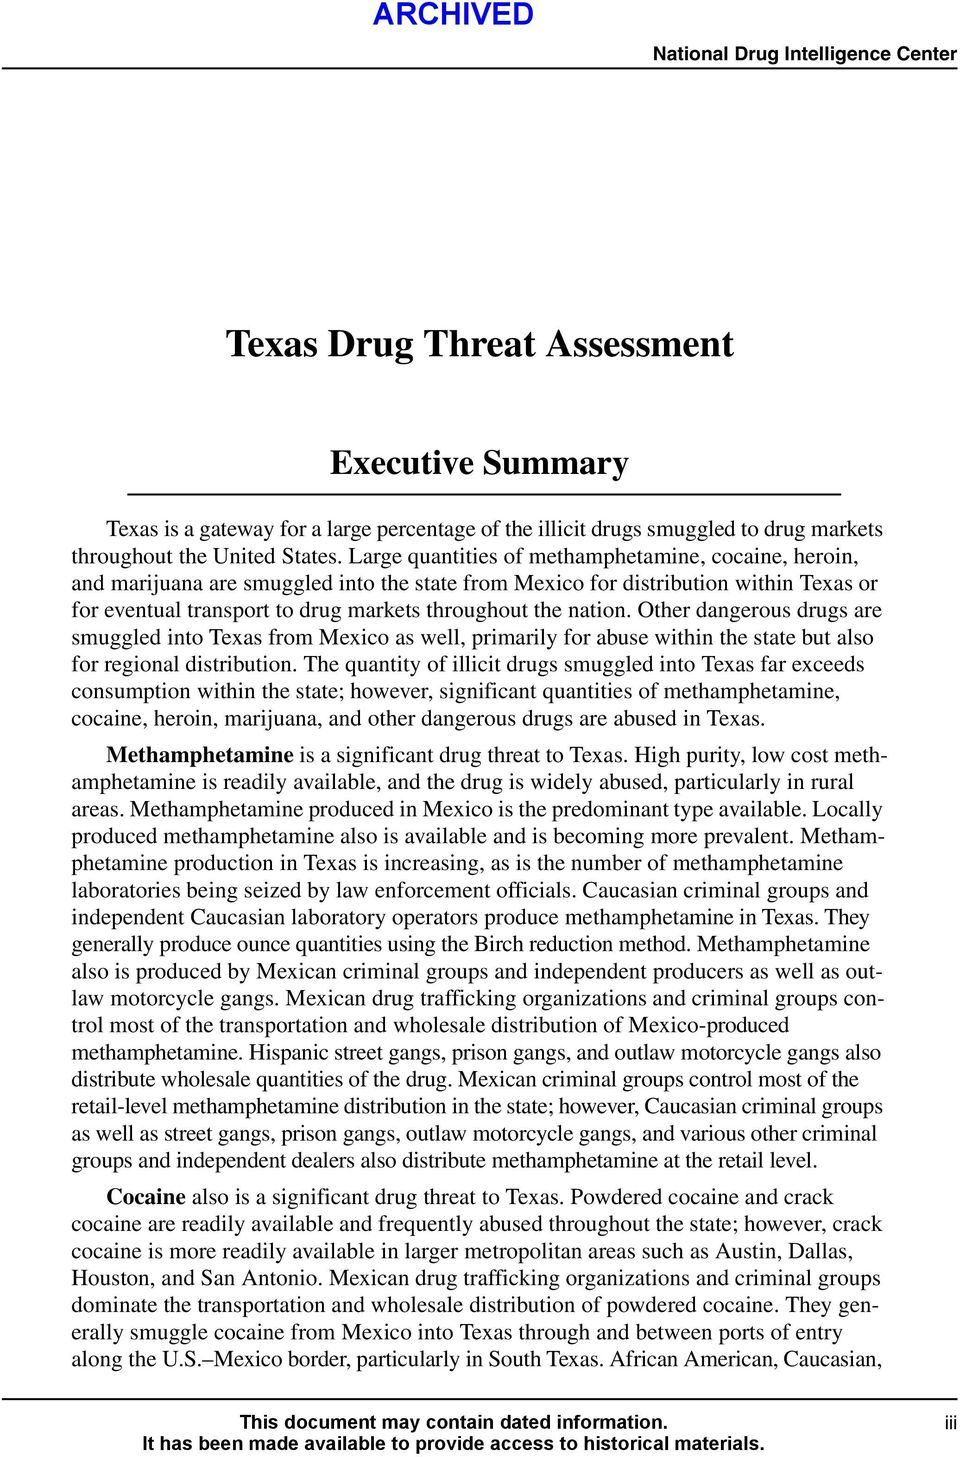 nation. Other dangerous drugs are smuggled into Texas from Mexico as well, primarily for abuse within the state but also for regional distribution.